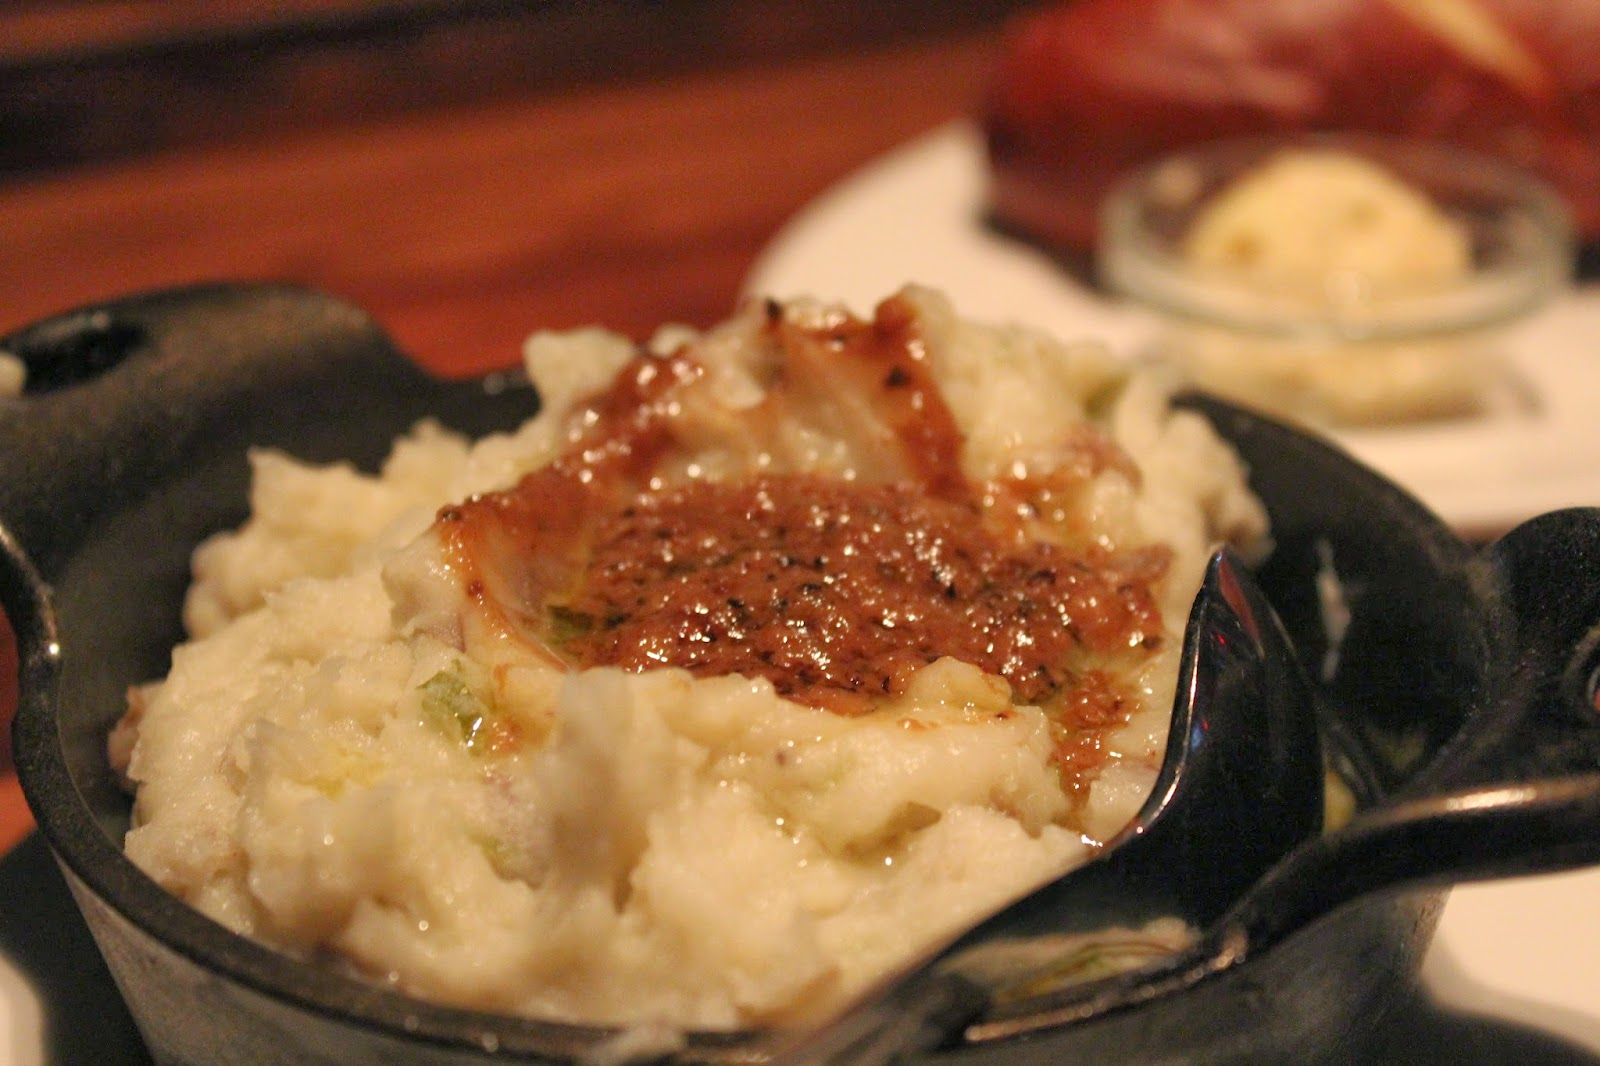 Garlic mashed potatoes at Del Frisco's Grille